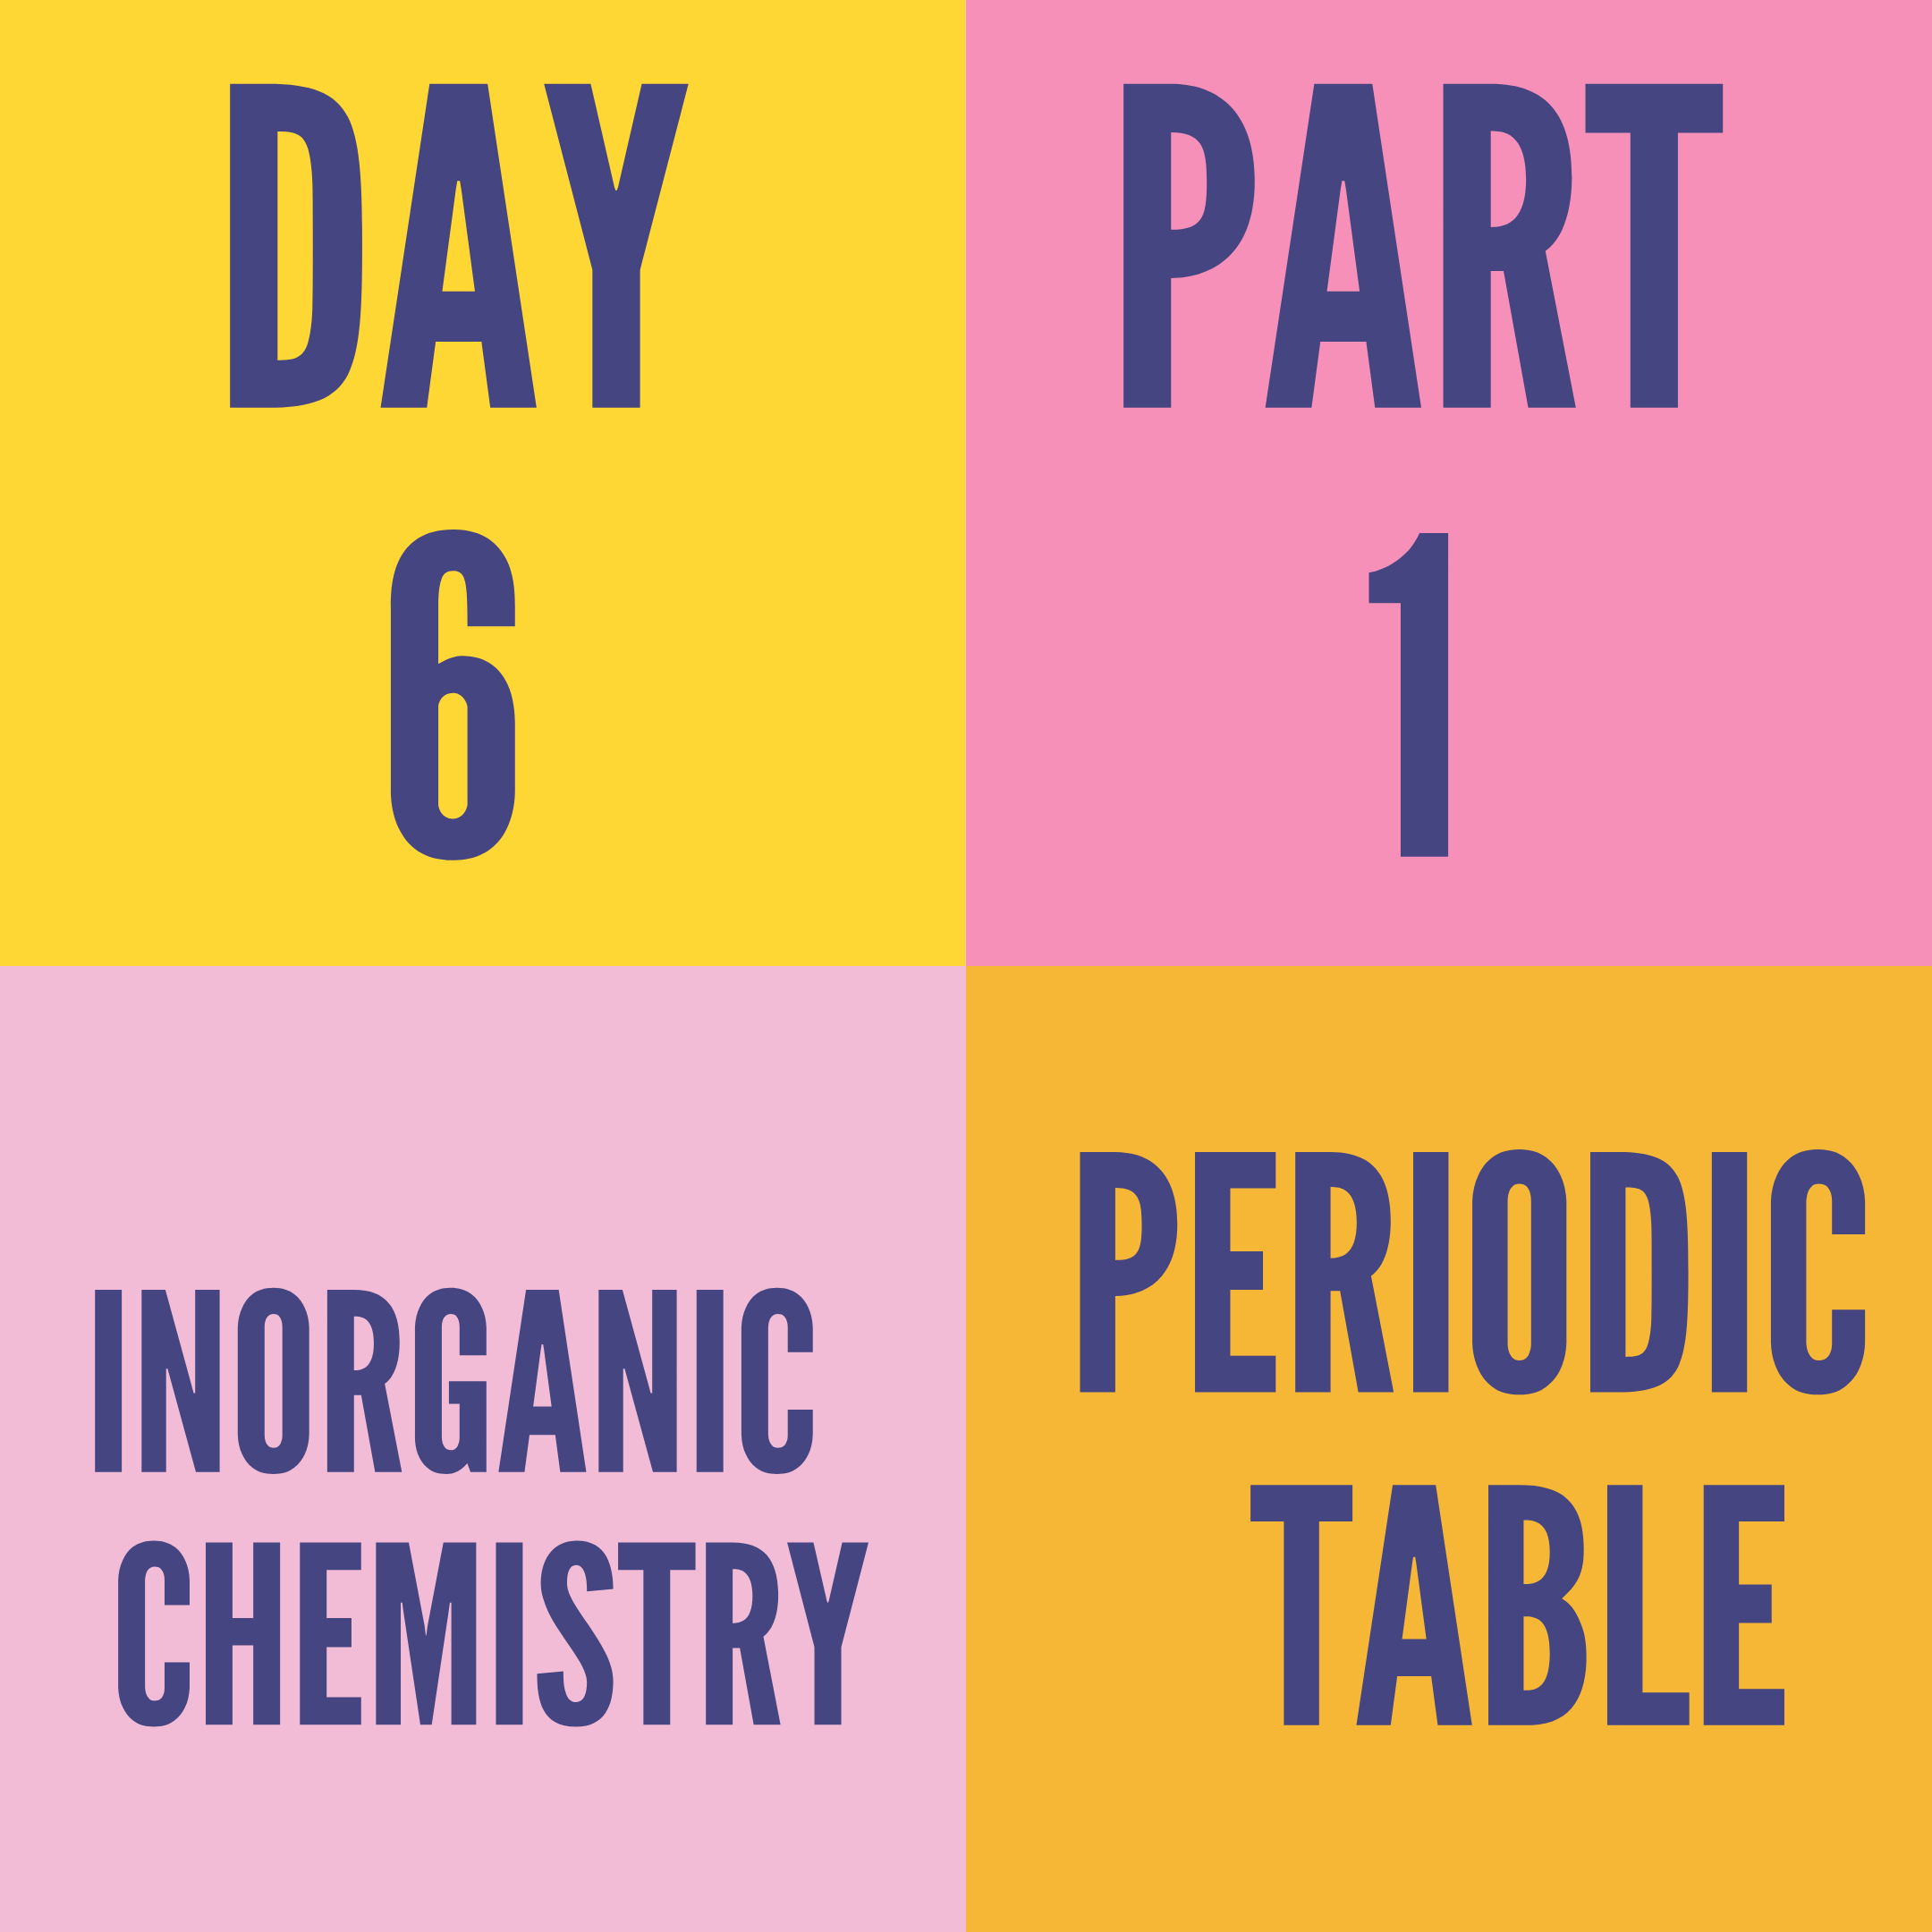 DAY-6 PART-1 PERIODIC TABLE